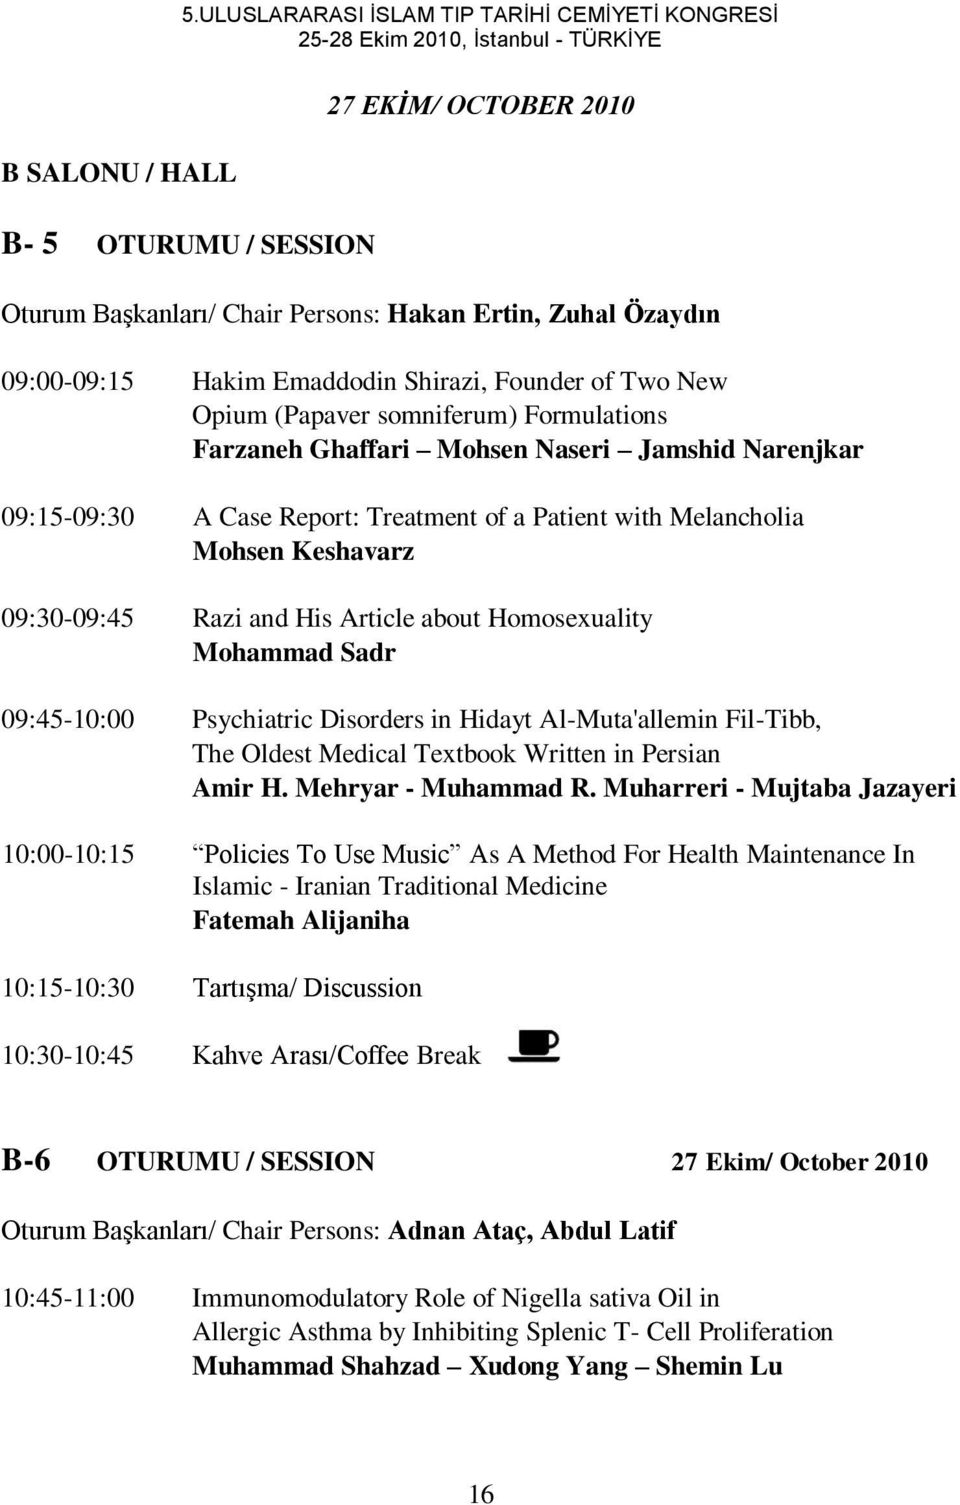 Patient with Melancholia Mohsen Keshavarz 09:30-09:45 Razi and His Article about Homosexuality Mohammad Sadr 09:45-10:00 Psychiatric Disorders in Hidayt Al-Muta'allemin Fil-Tibb, The Oldest Medical